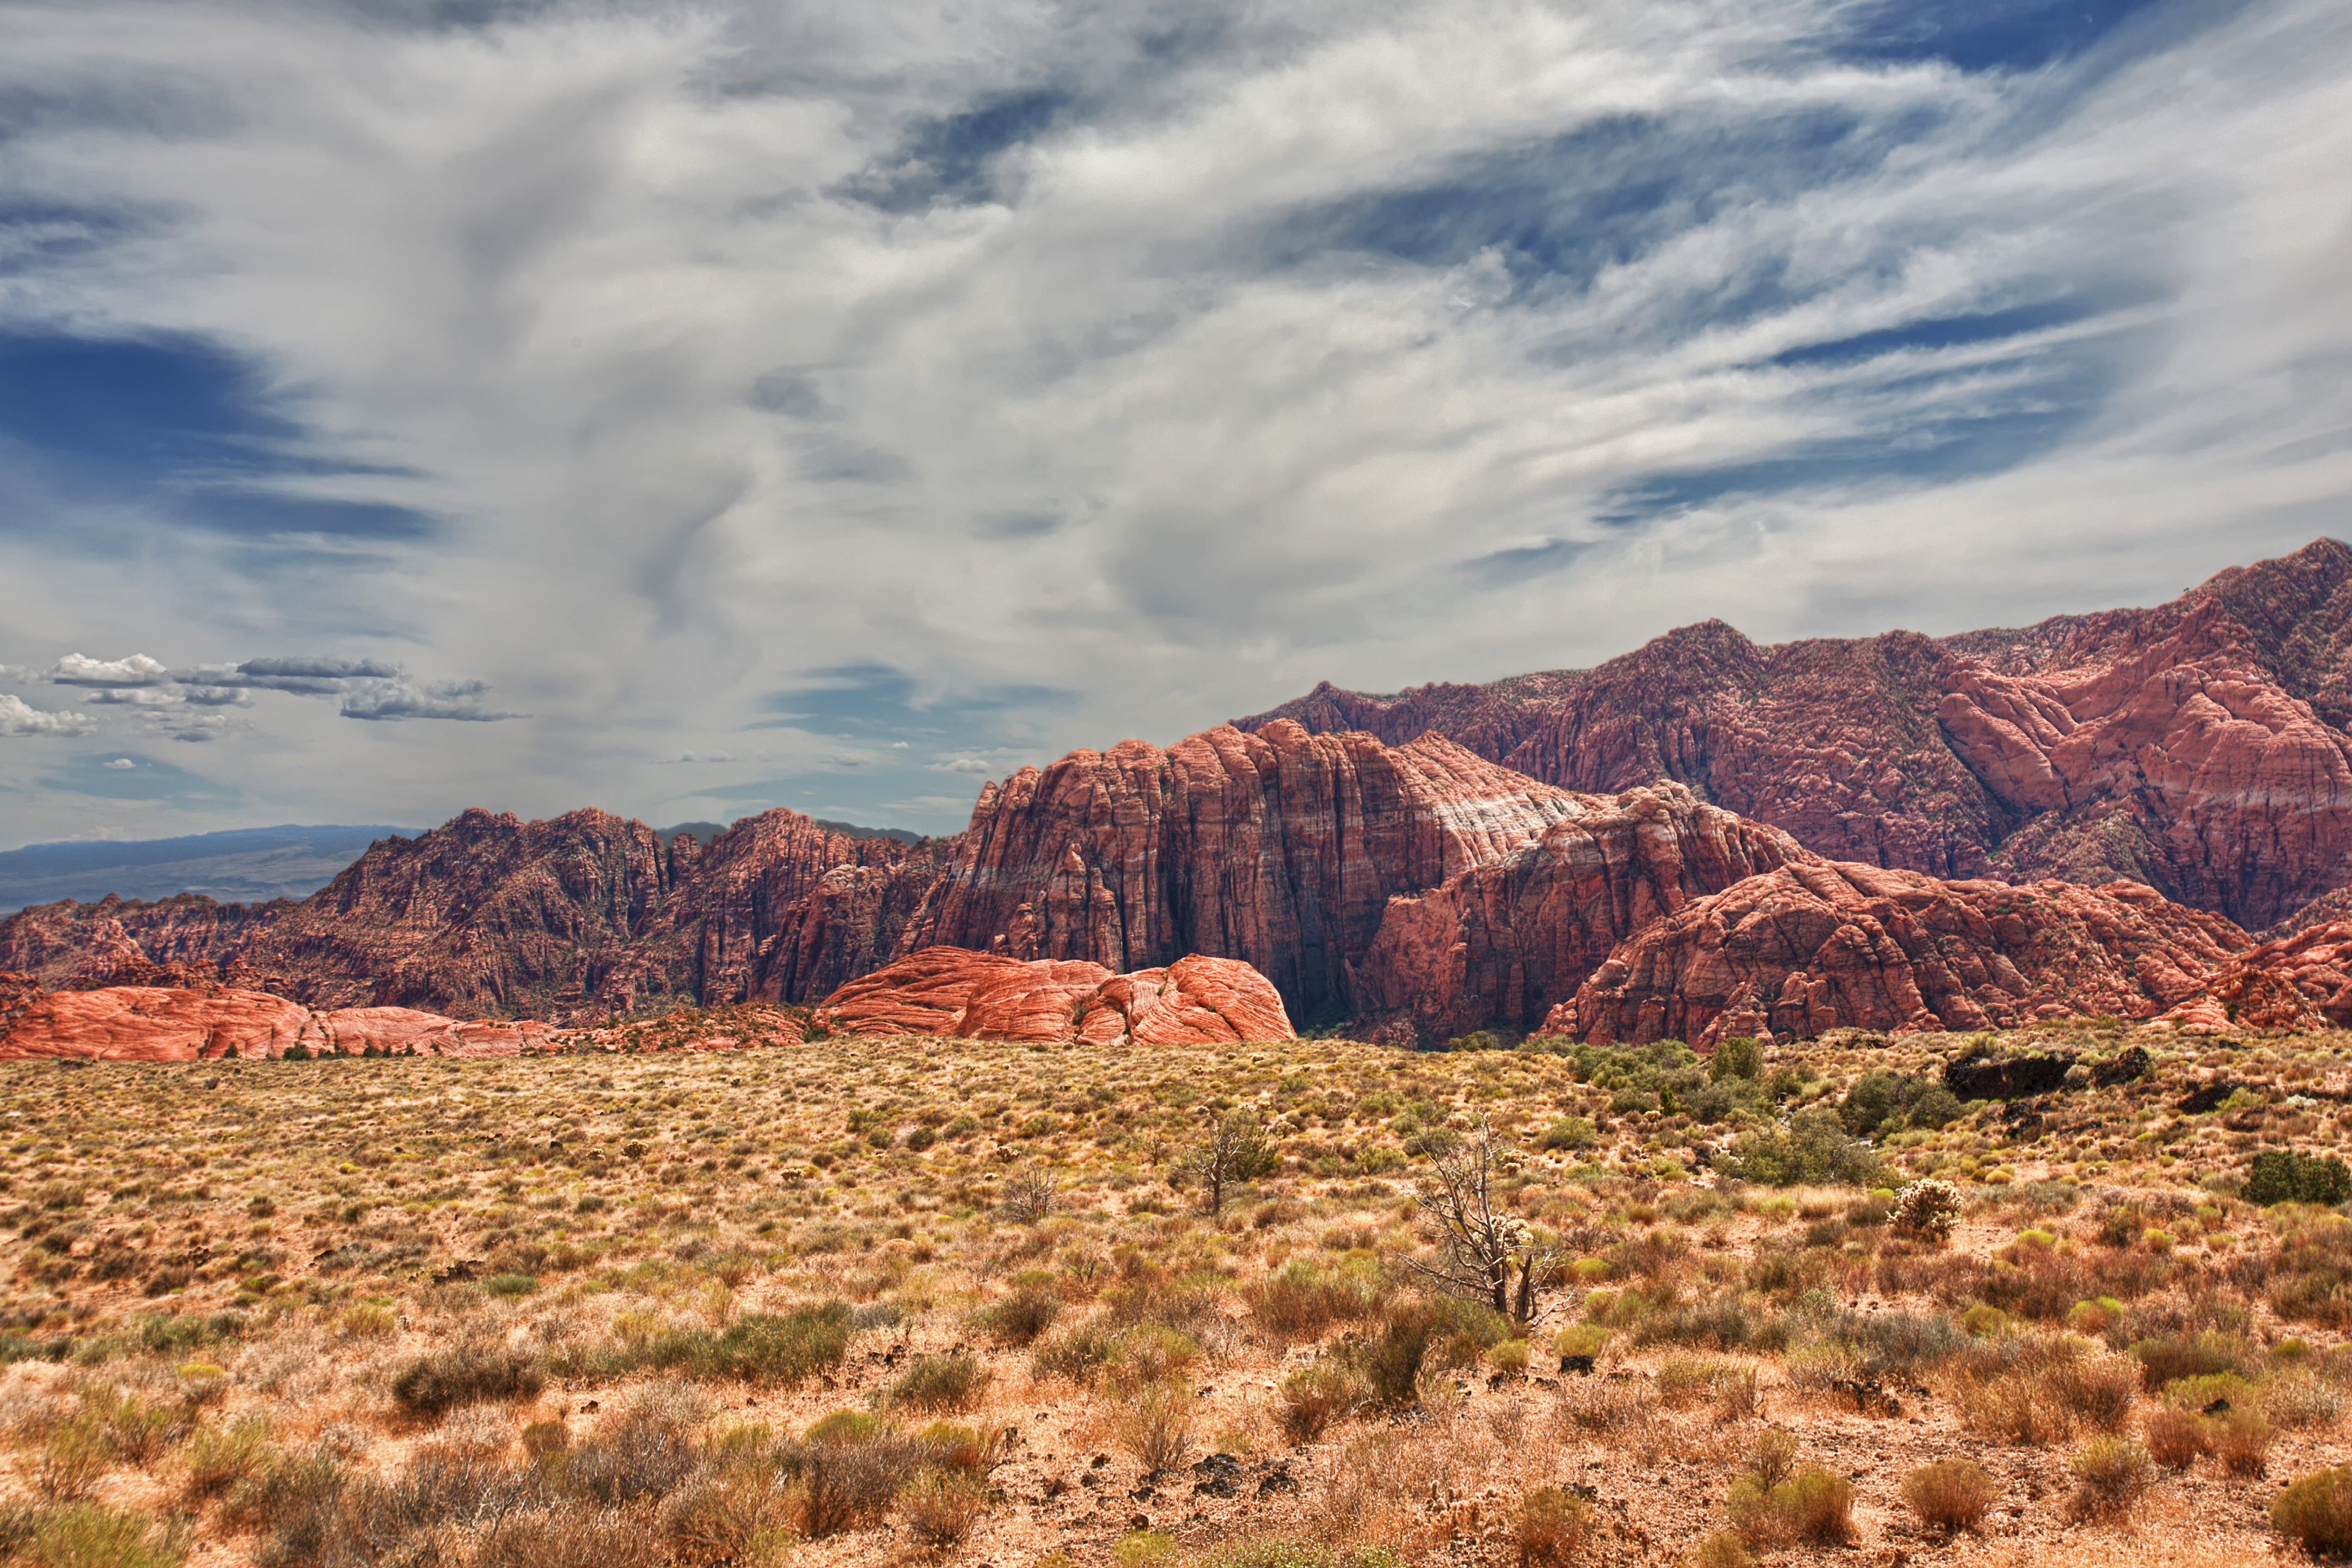 Share Photos, Win Gear: Enter America's State Parks Photo Contest